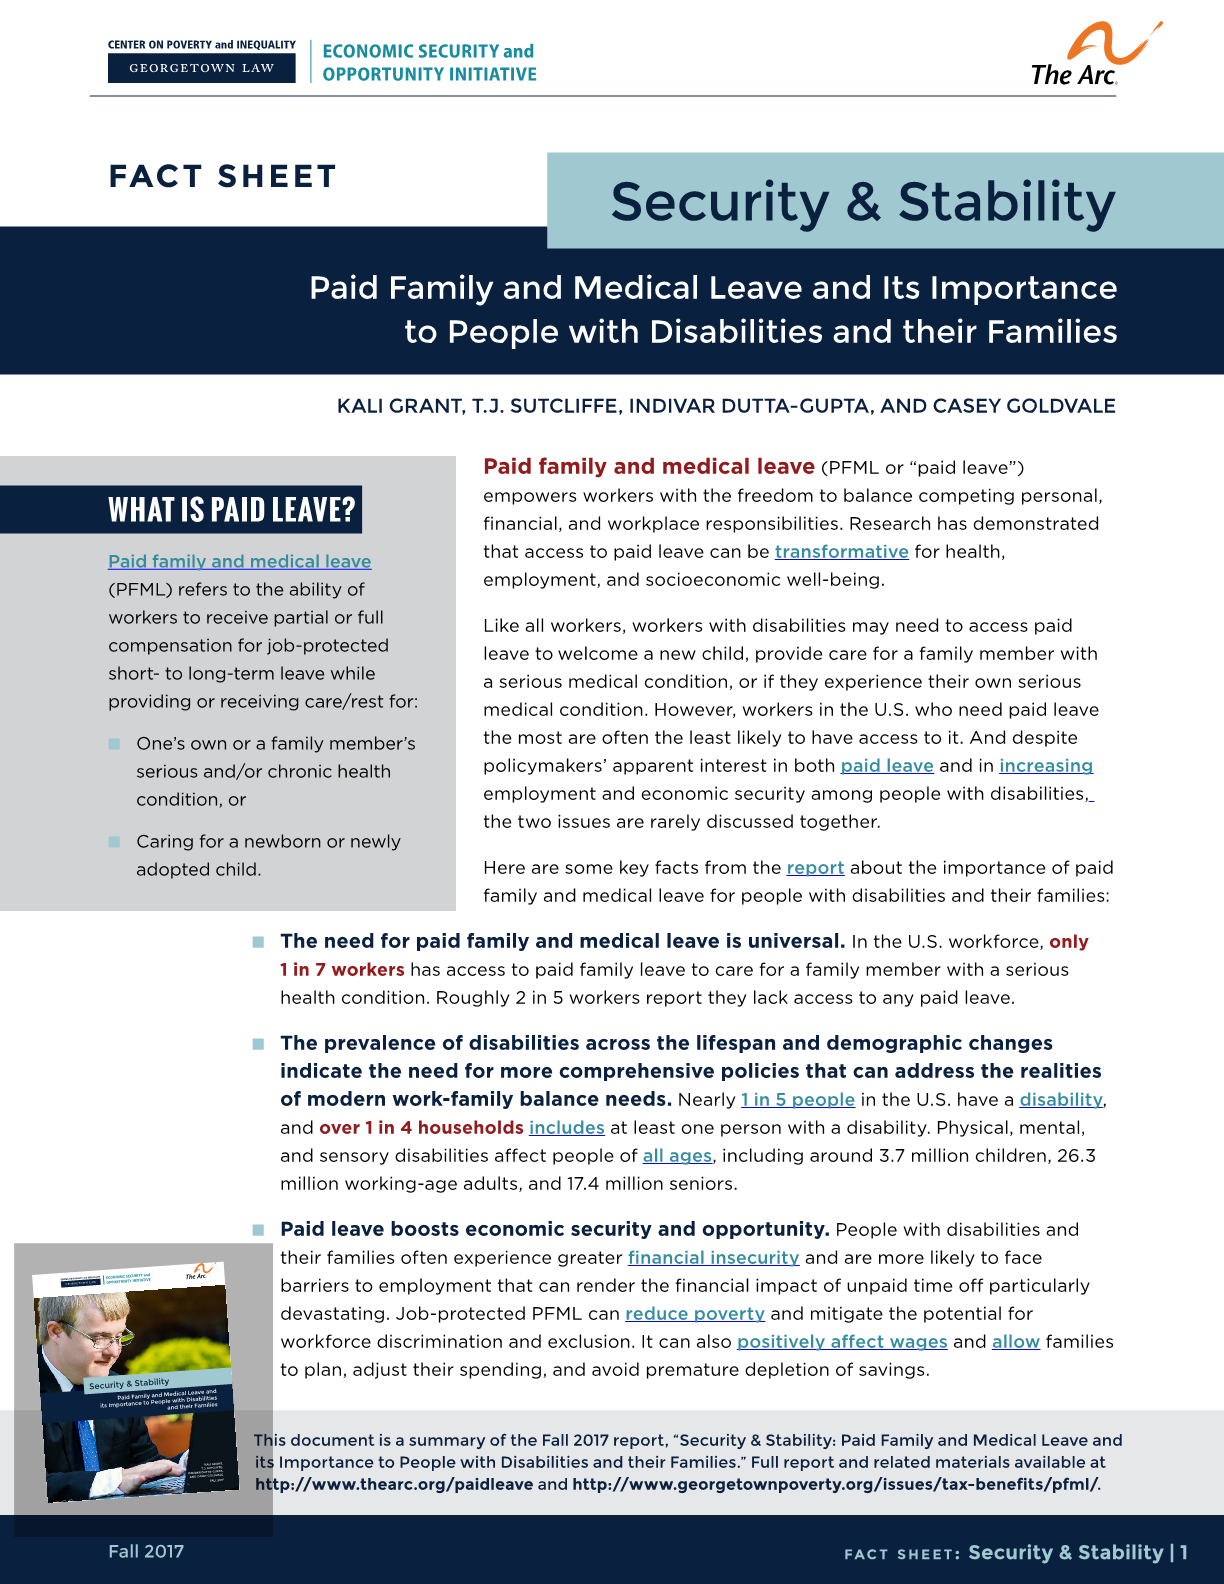 Paid Family and Medical Leave and Its Importance to People with Disabilities and their Families